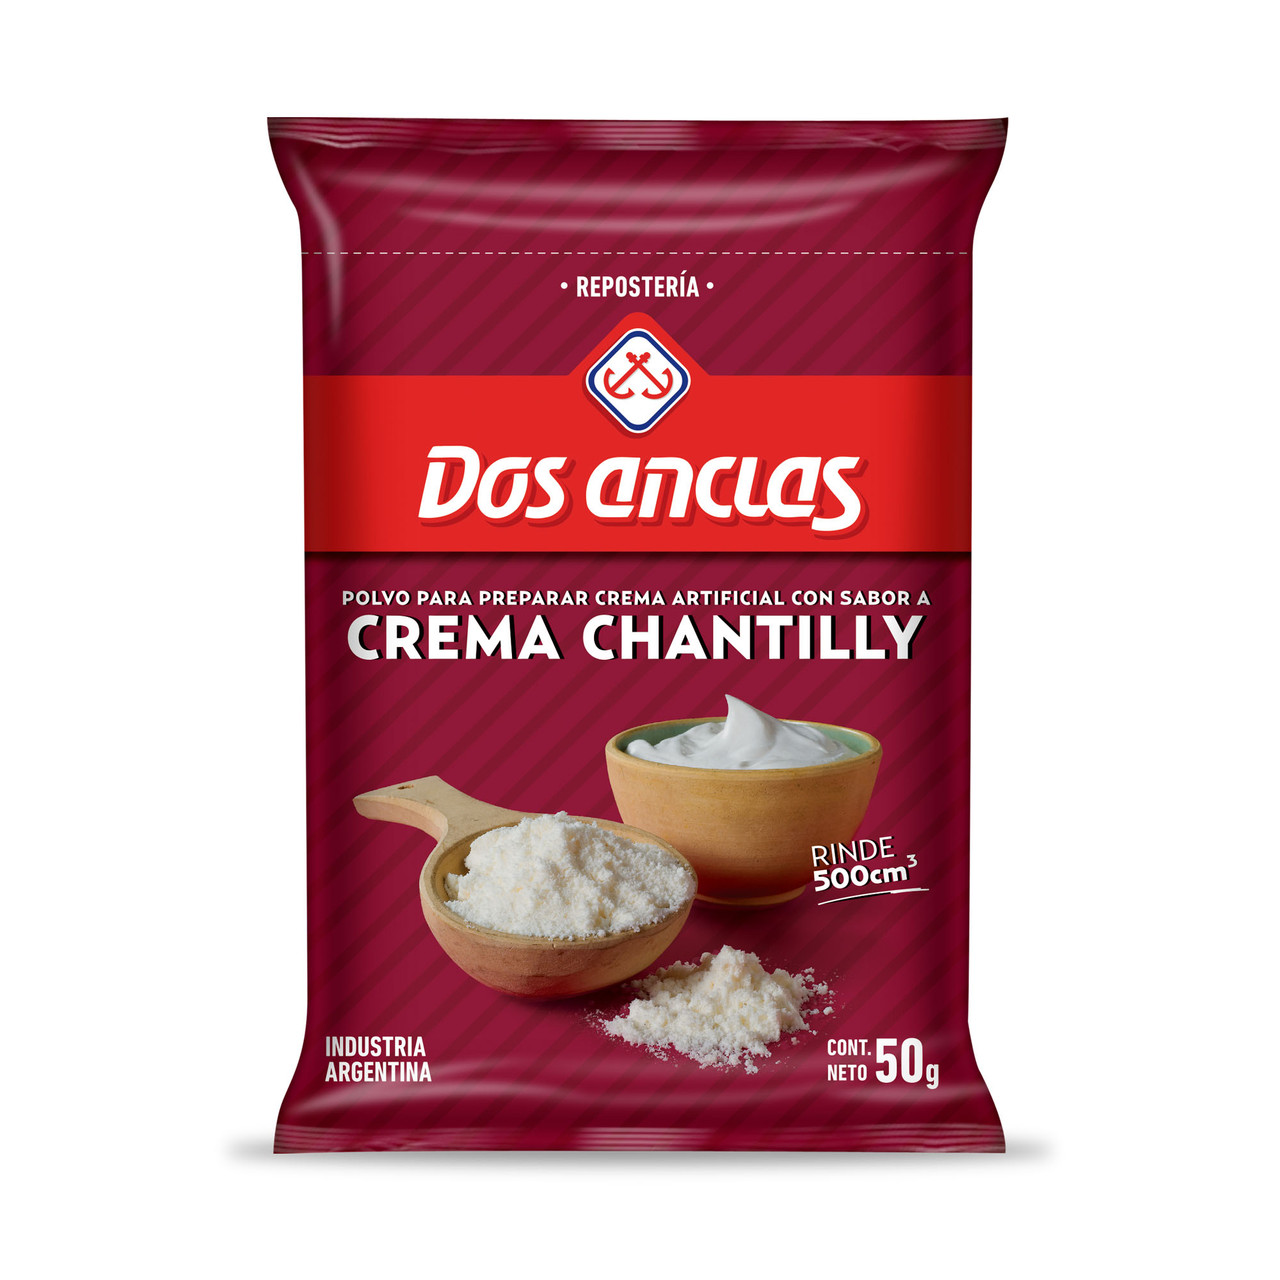 Dos Anclas Crema Chantilly Powder Ready To Make Chantilly Cream 50 G 0 88 Oz Pouch For 500 Ml Pampa Direct